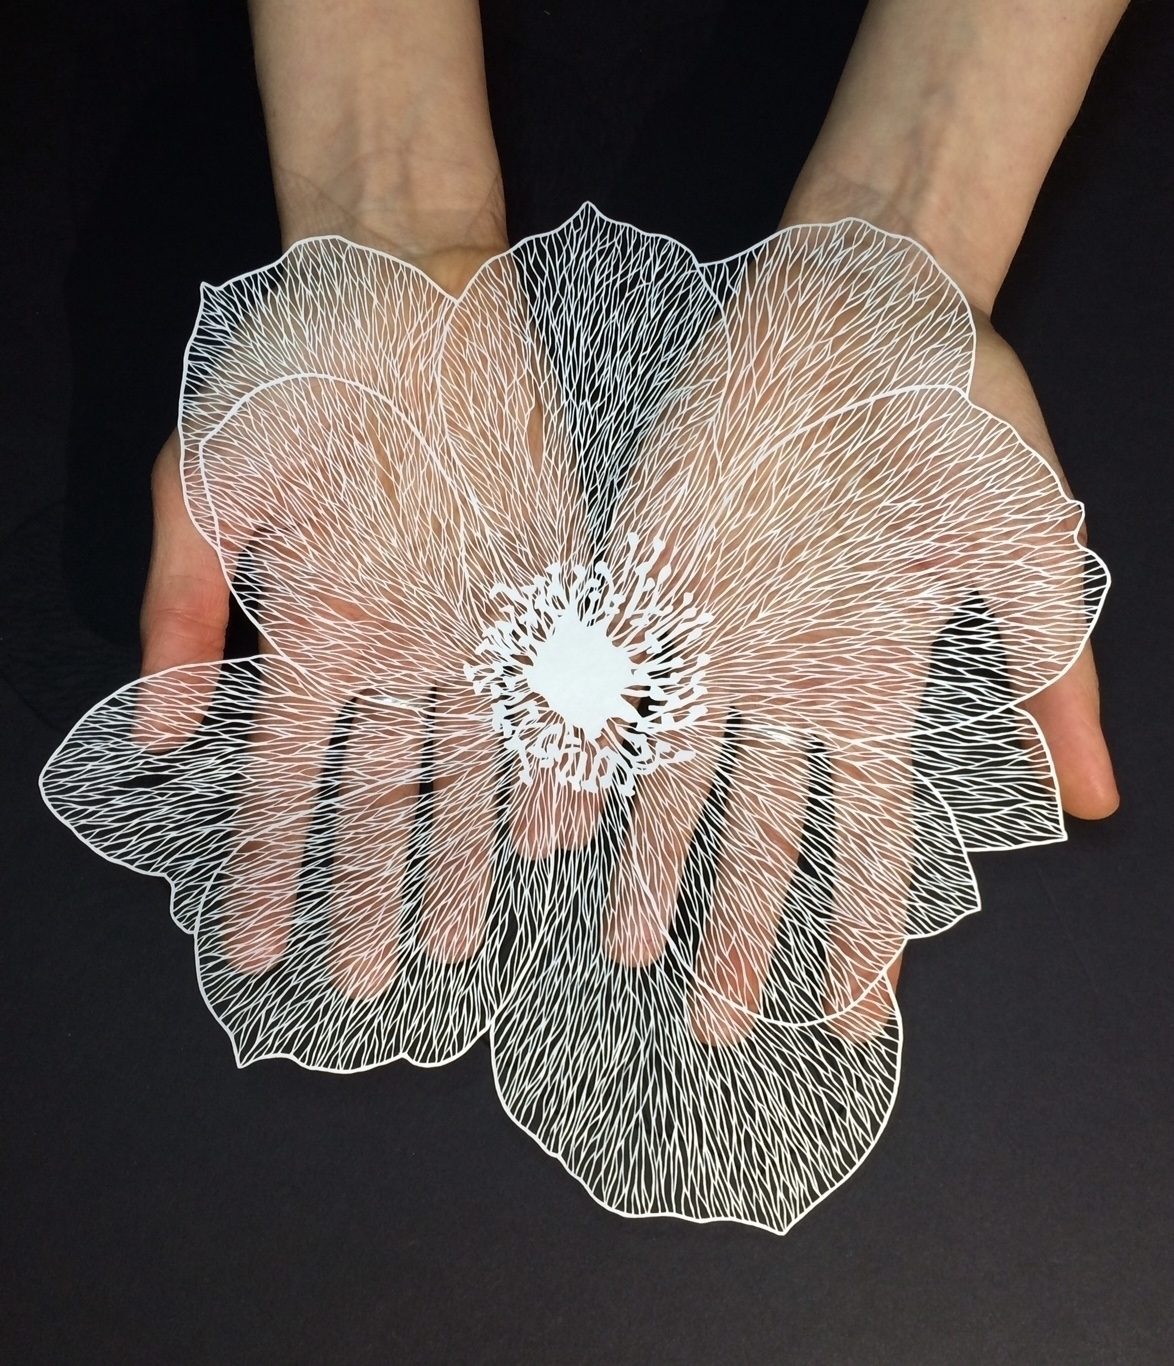 Paper carving artist maud white graphiste